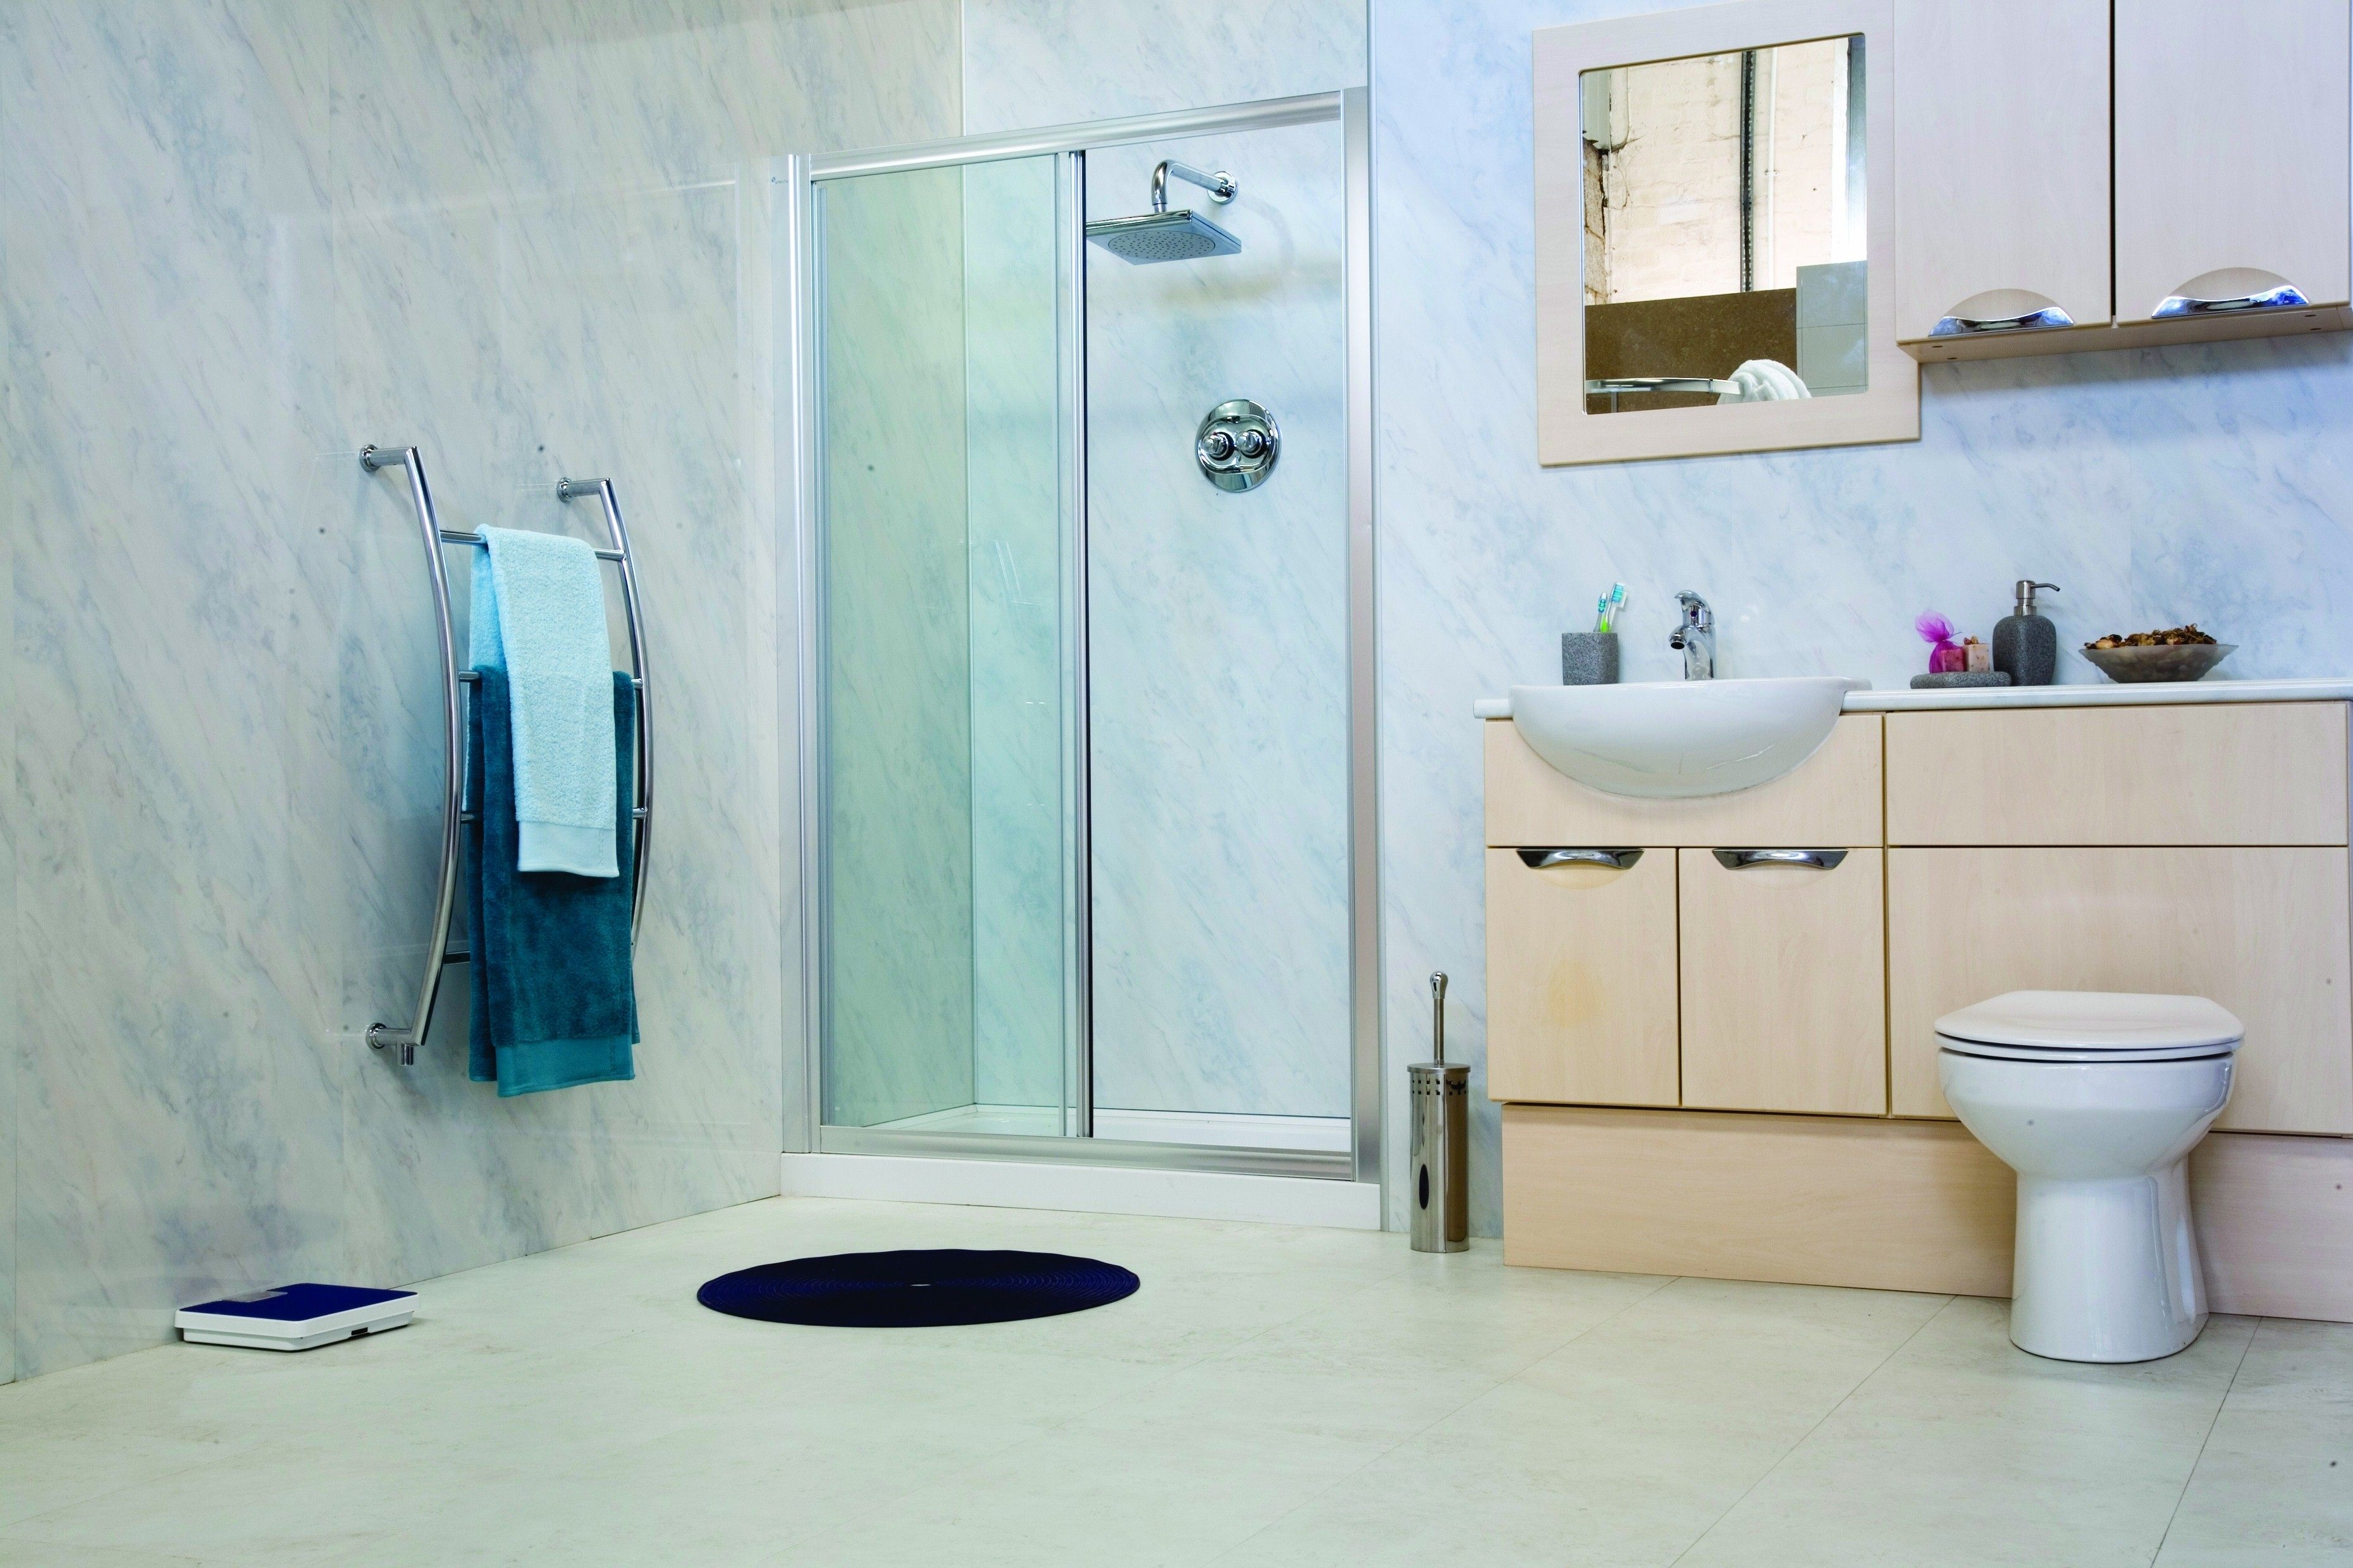 selkie shower panels